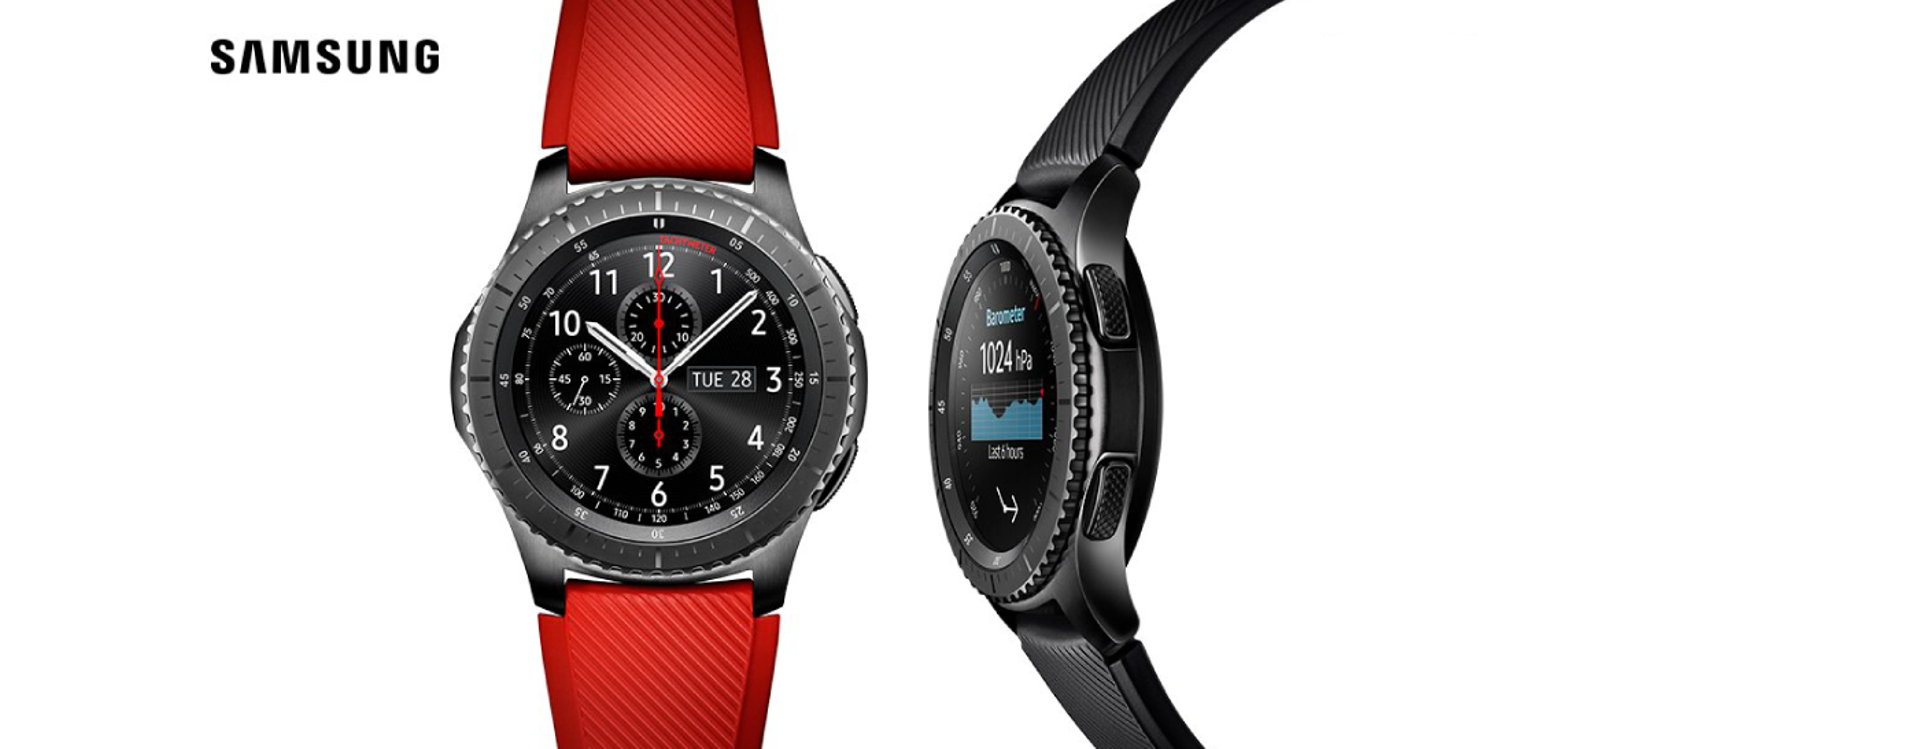 Samsung Gear S3 will be available in store in October 2016.